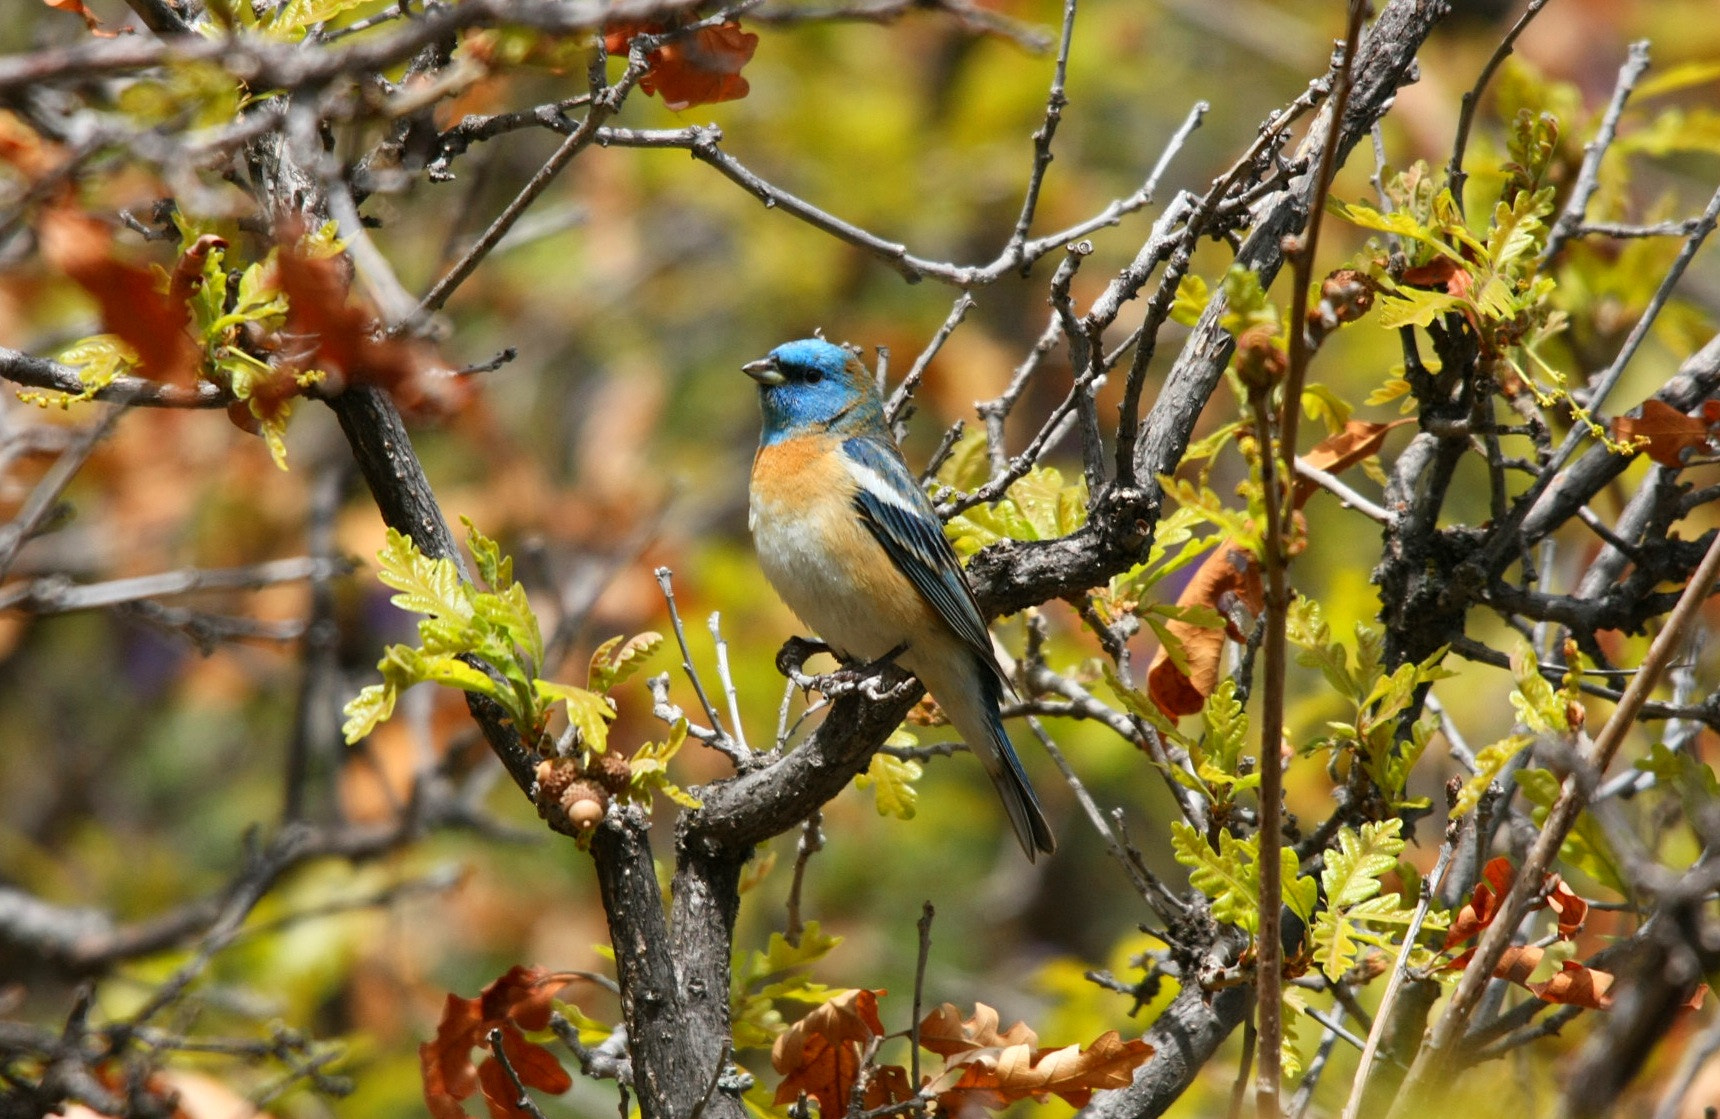 Photograph Lazuli Bunting by Craig Eckerle on 500px